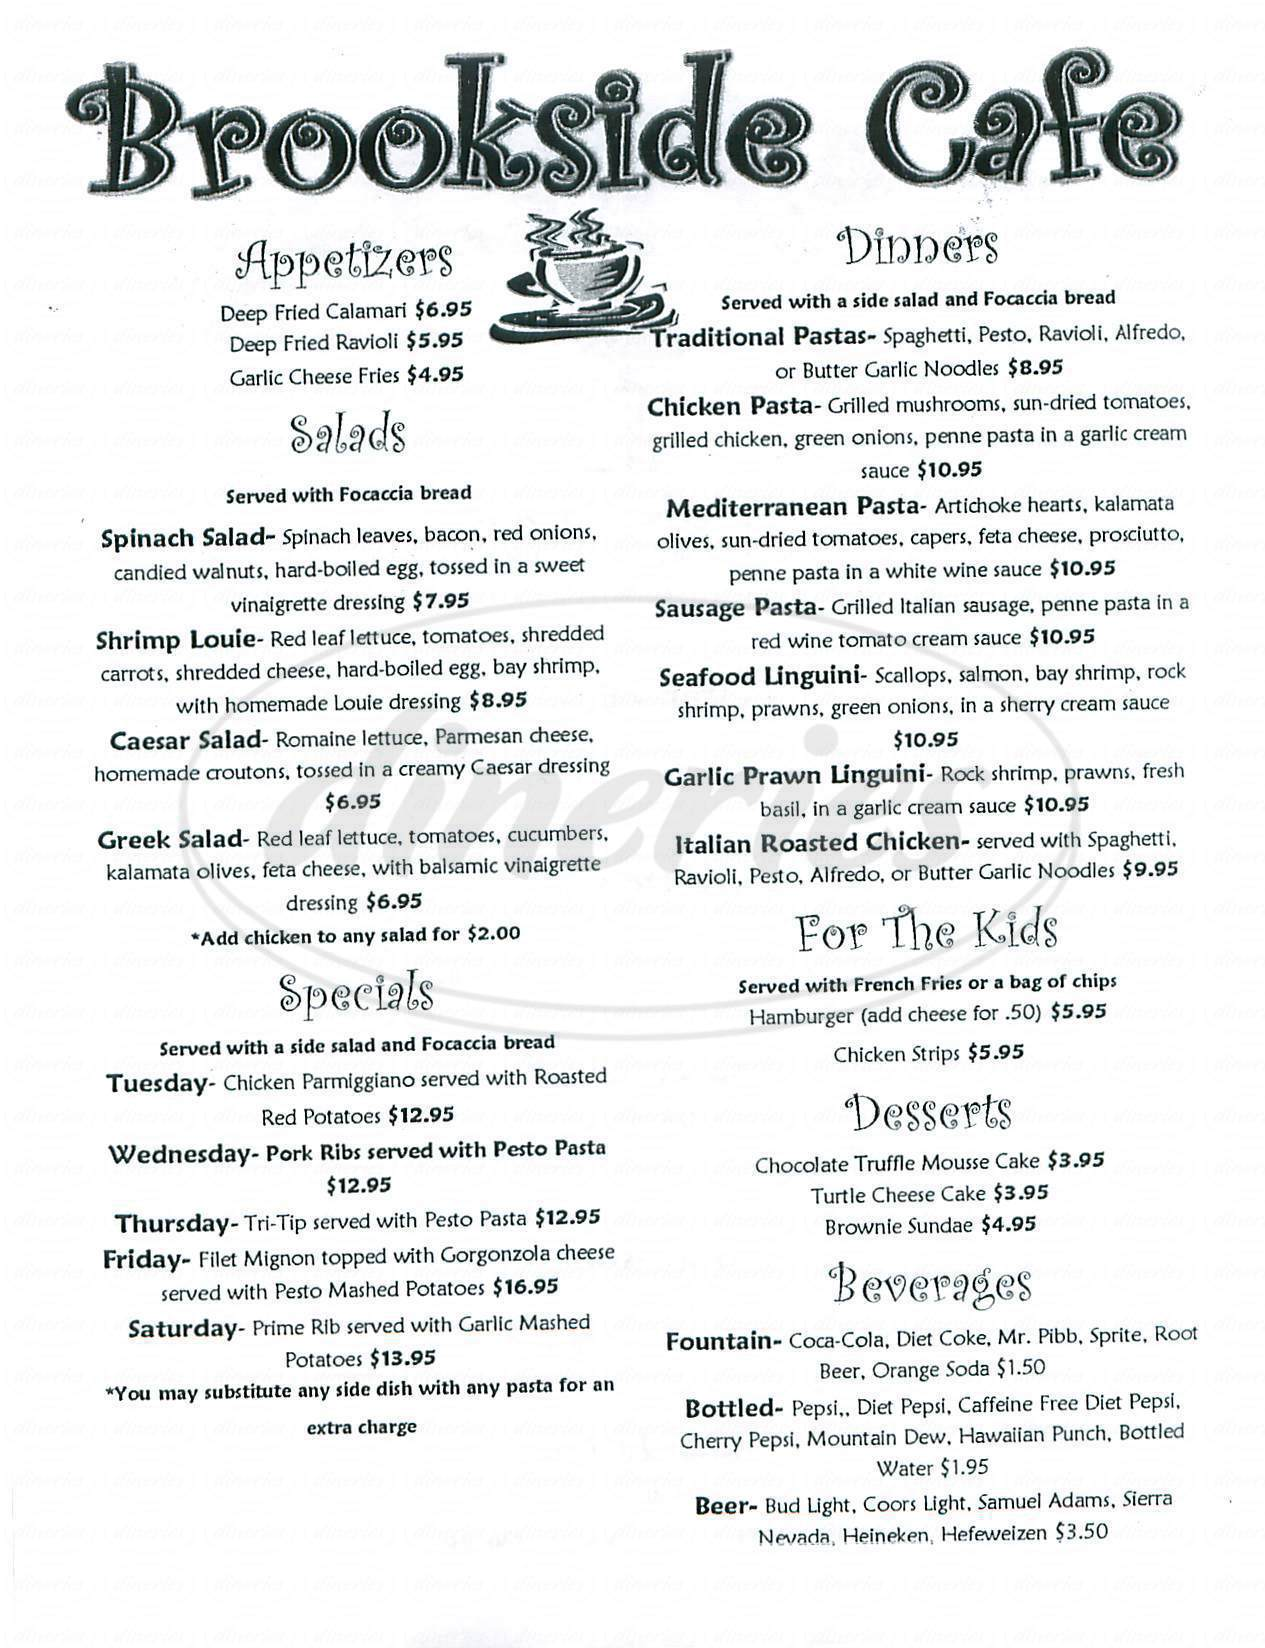 menu for Brookside Café